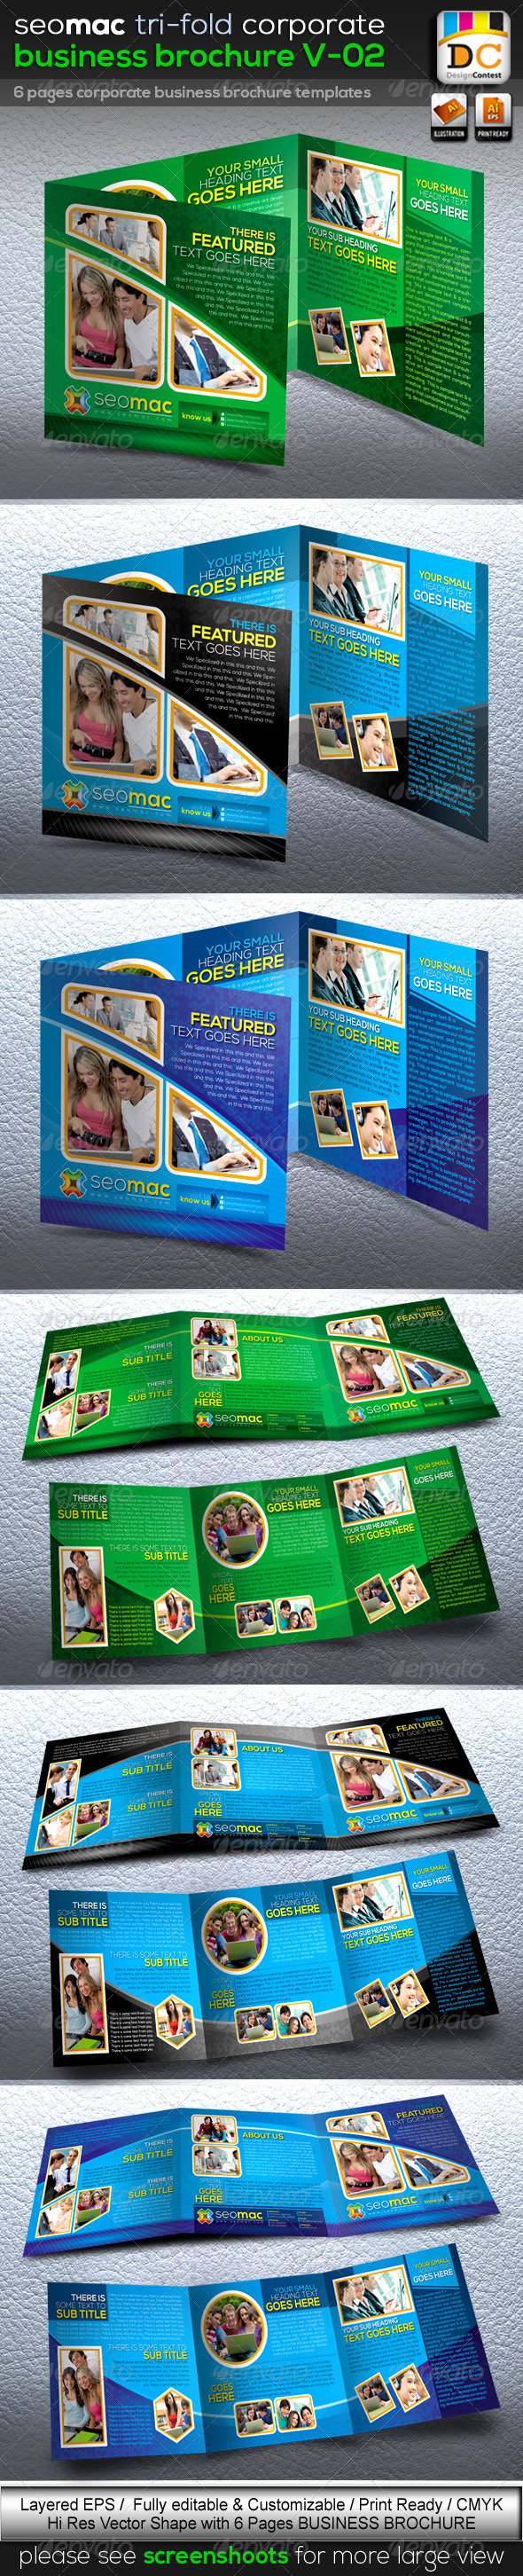 SeoMac Tri-fold Corporate Business Brochure V-02 - Corporate Brochures